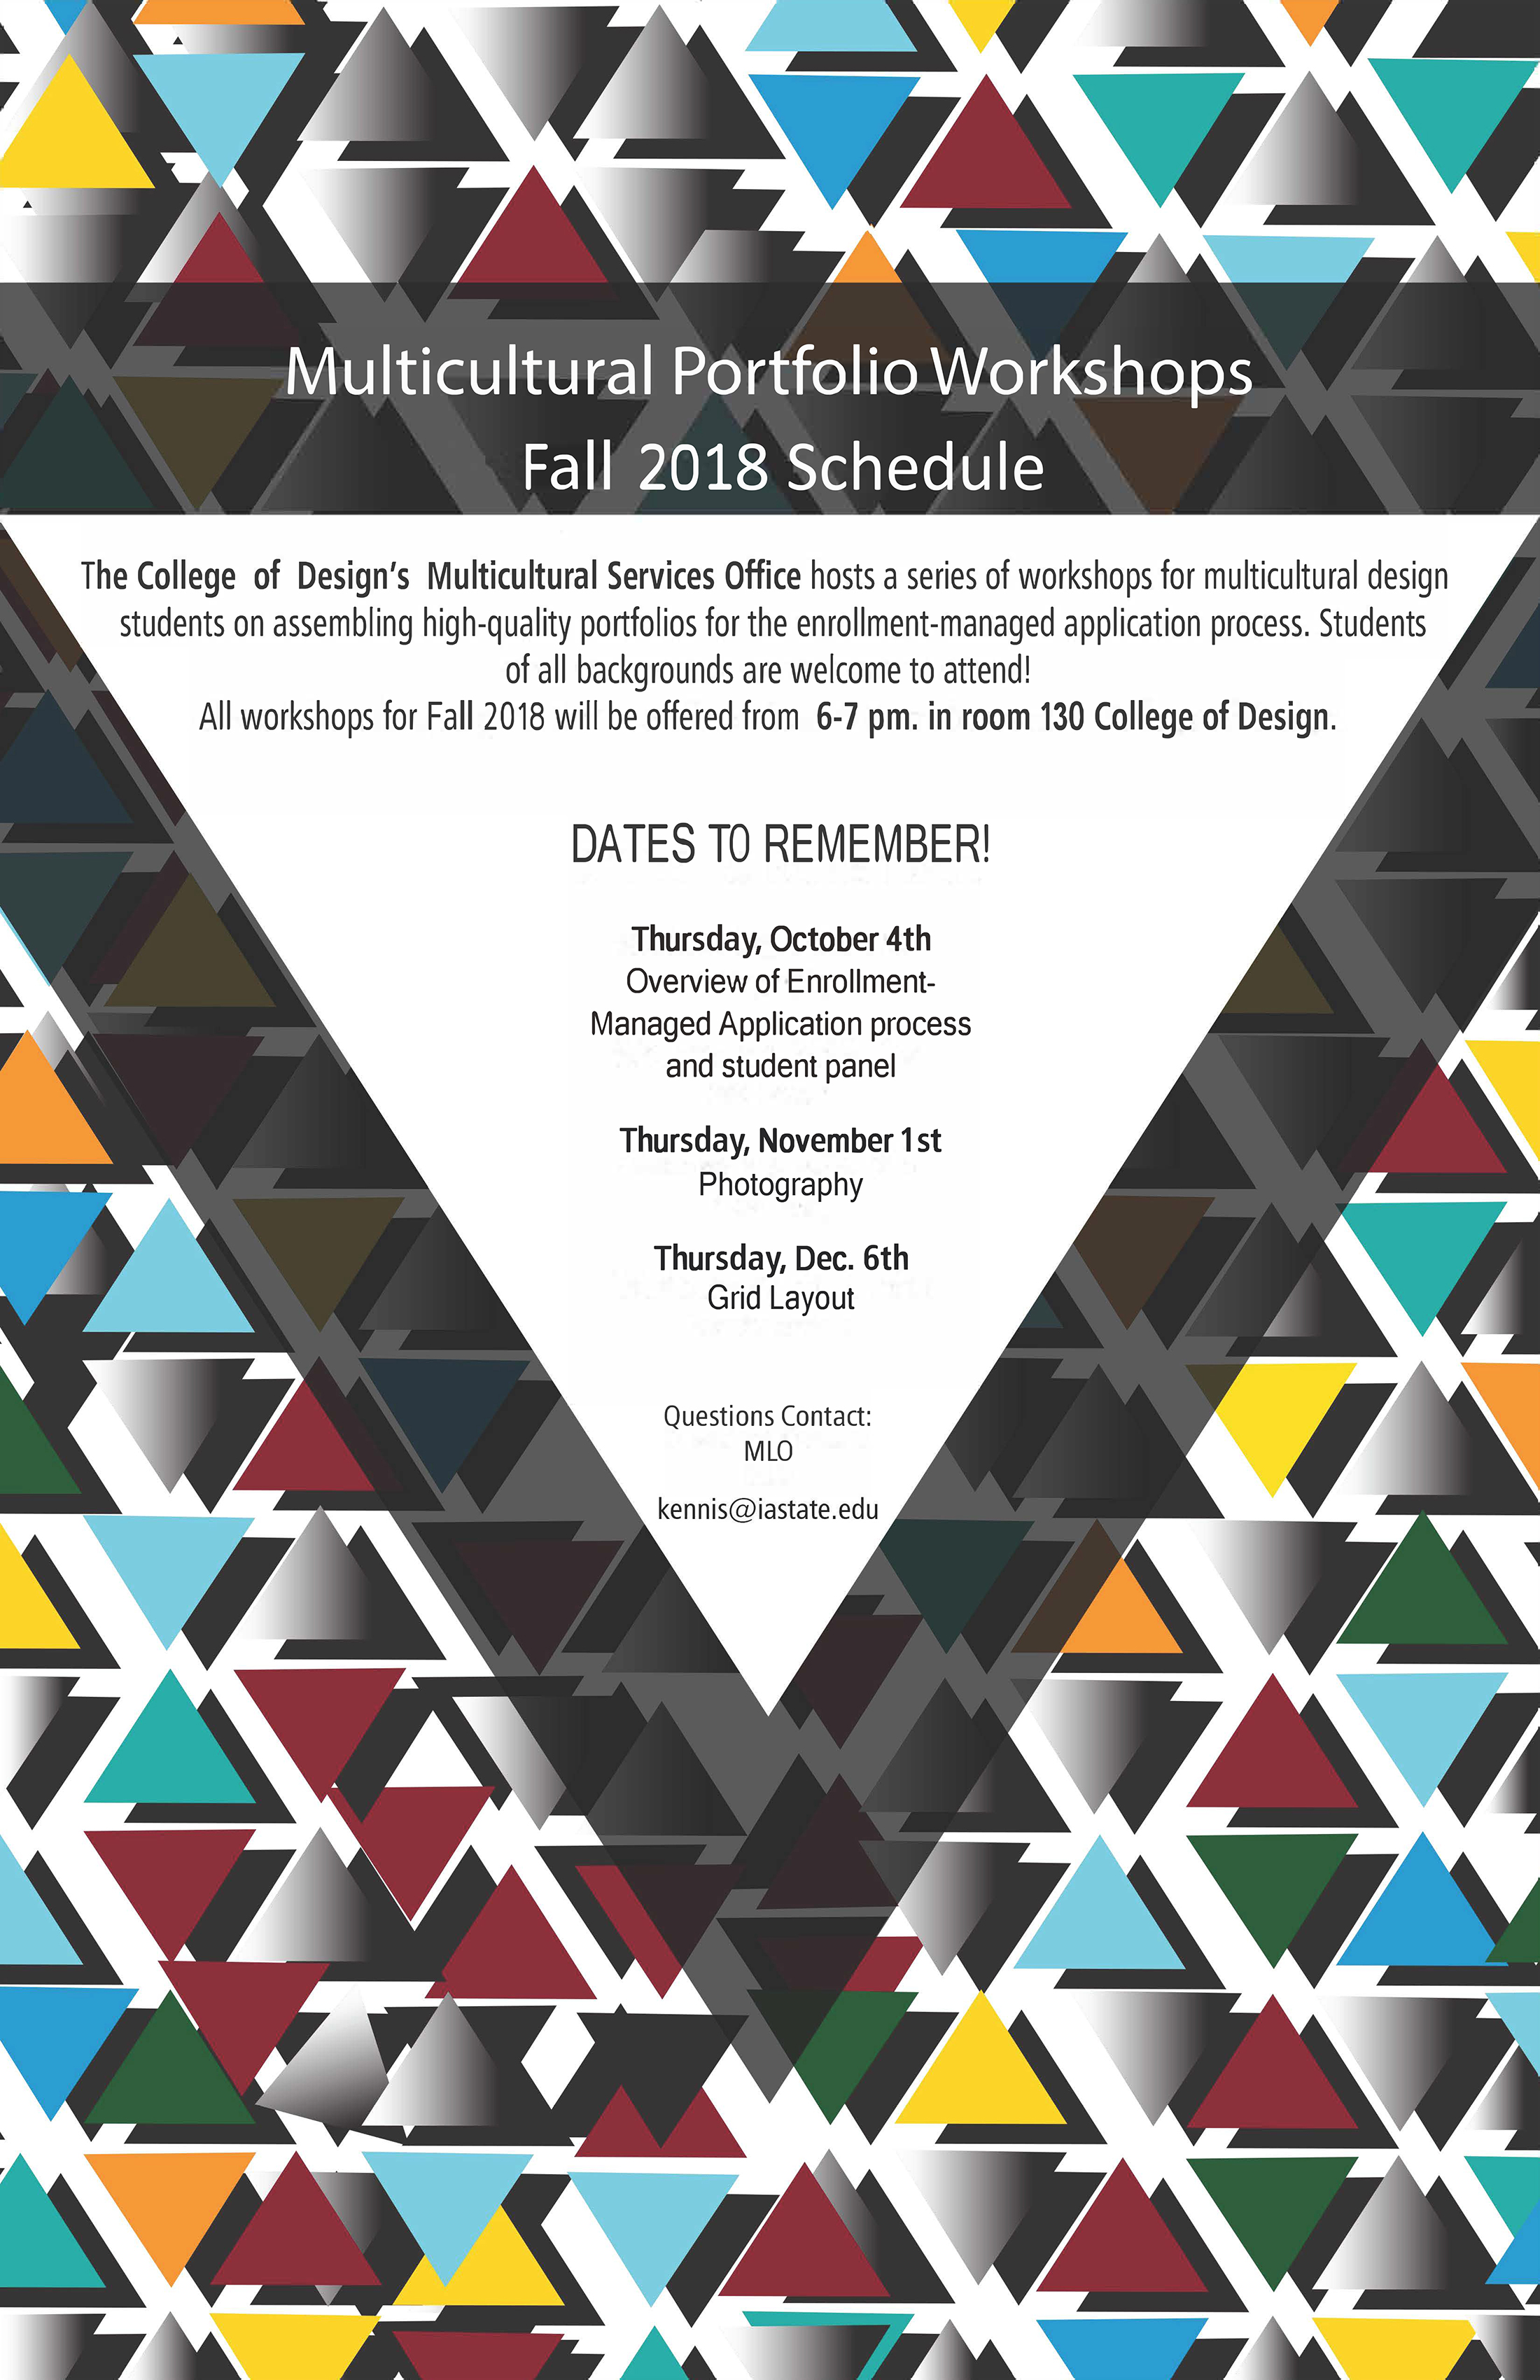 Multicultural Portfolio Workshop Fall 2018